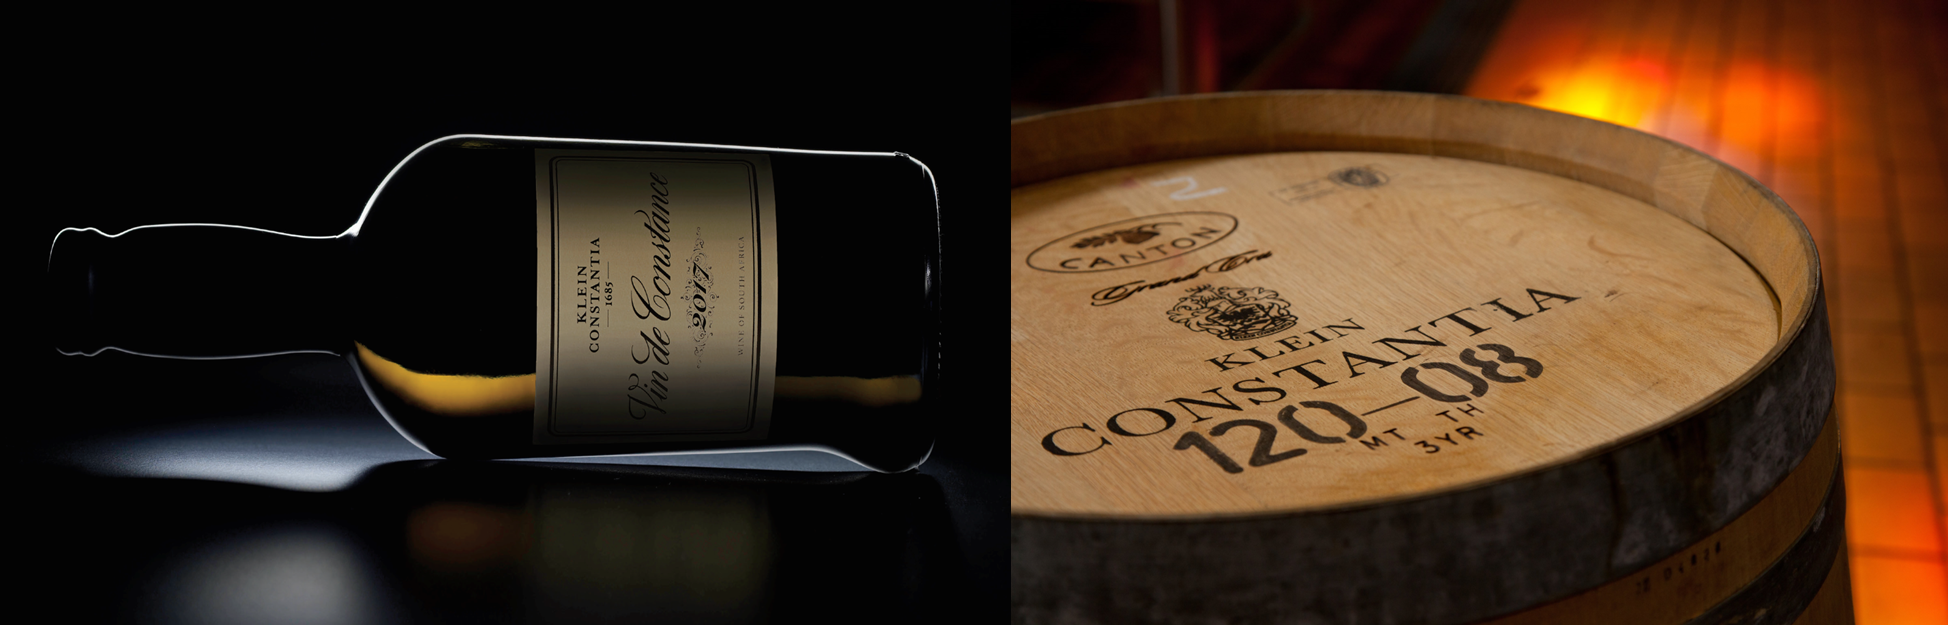 2018 Vin de Constance - one of the world's greatest sweet wines